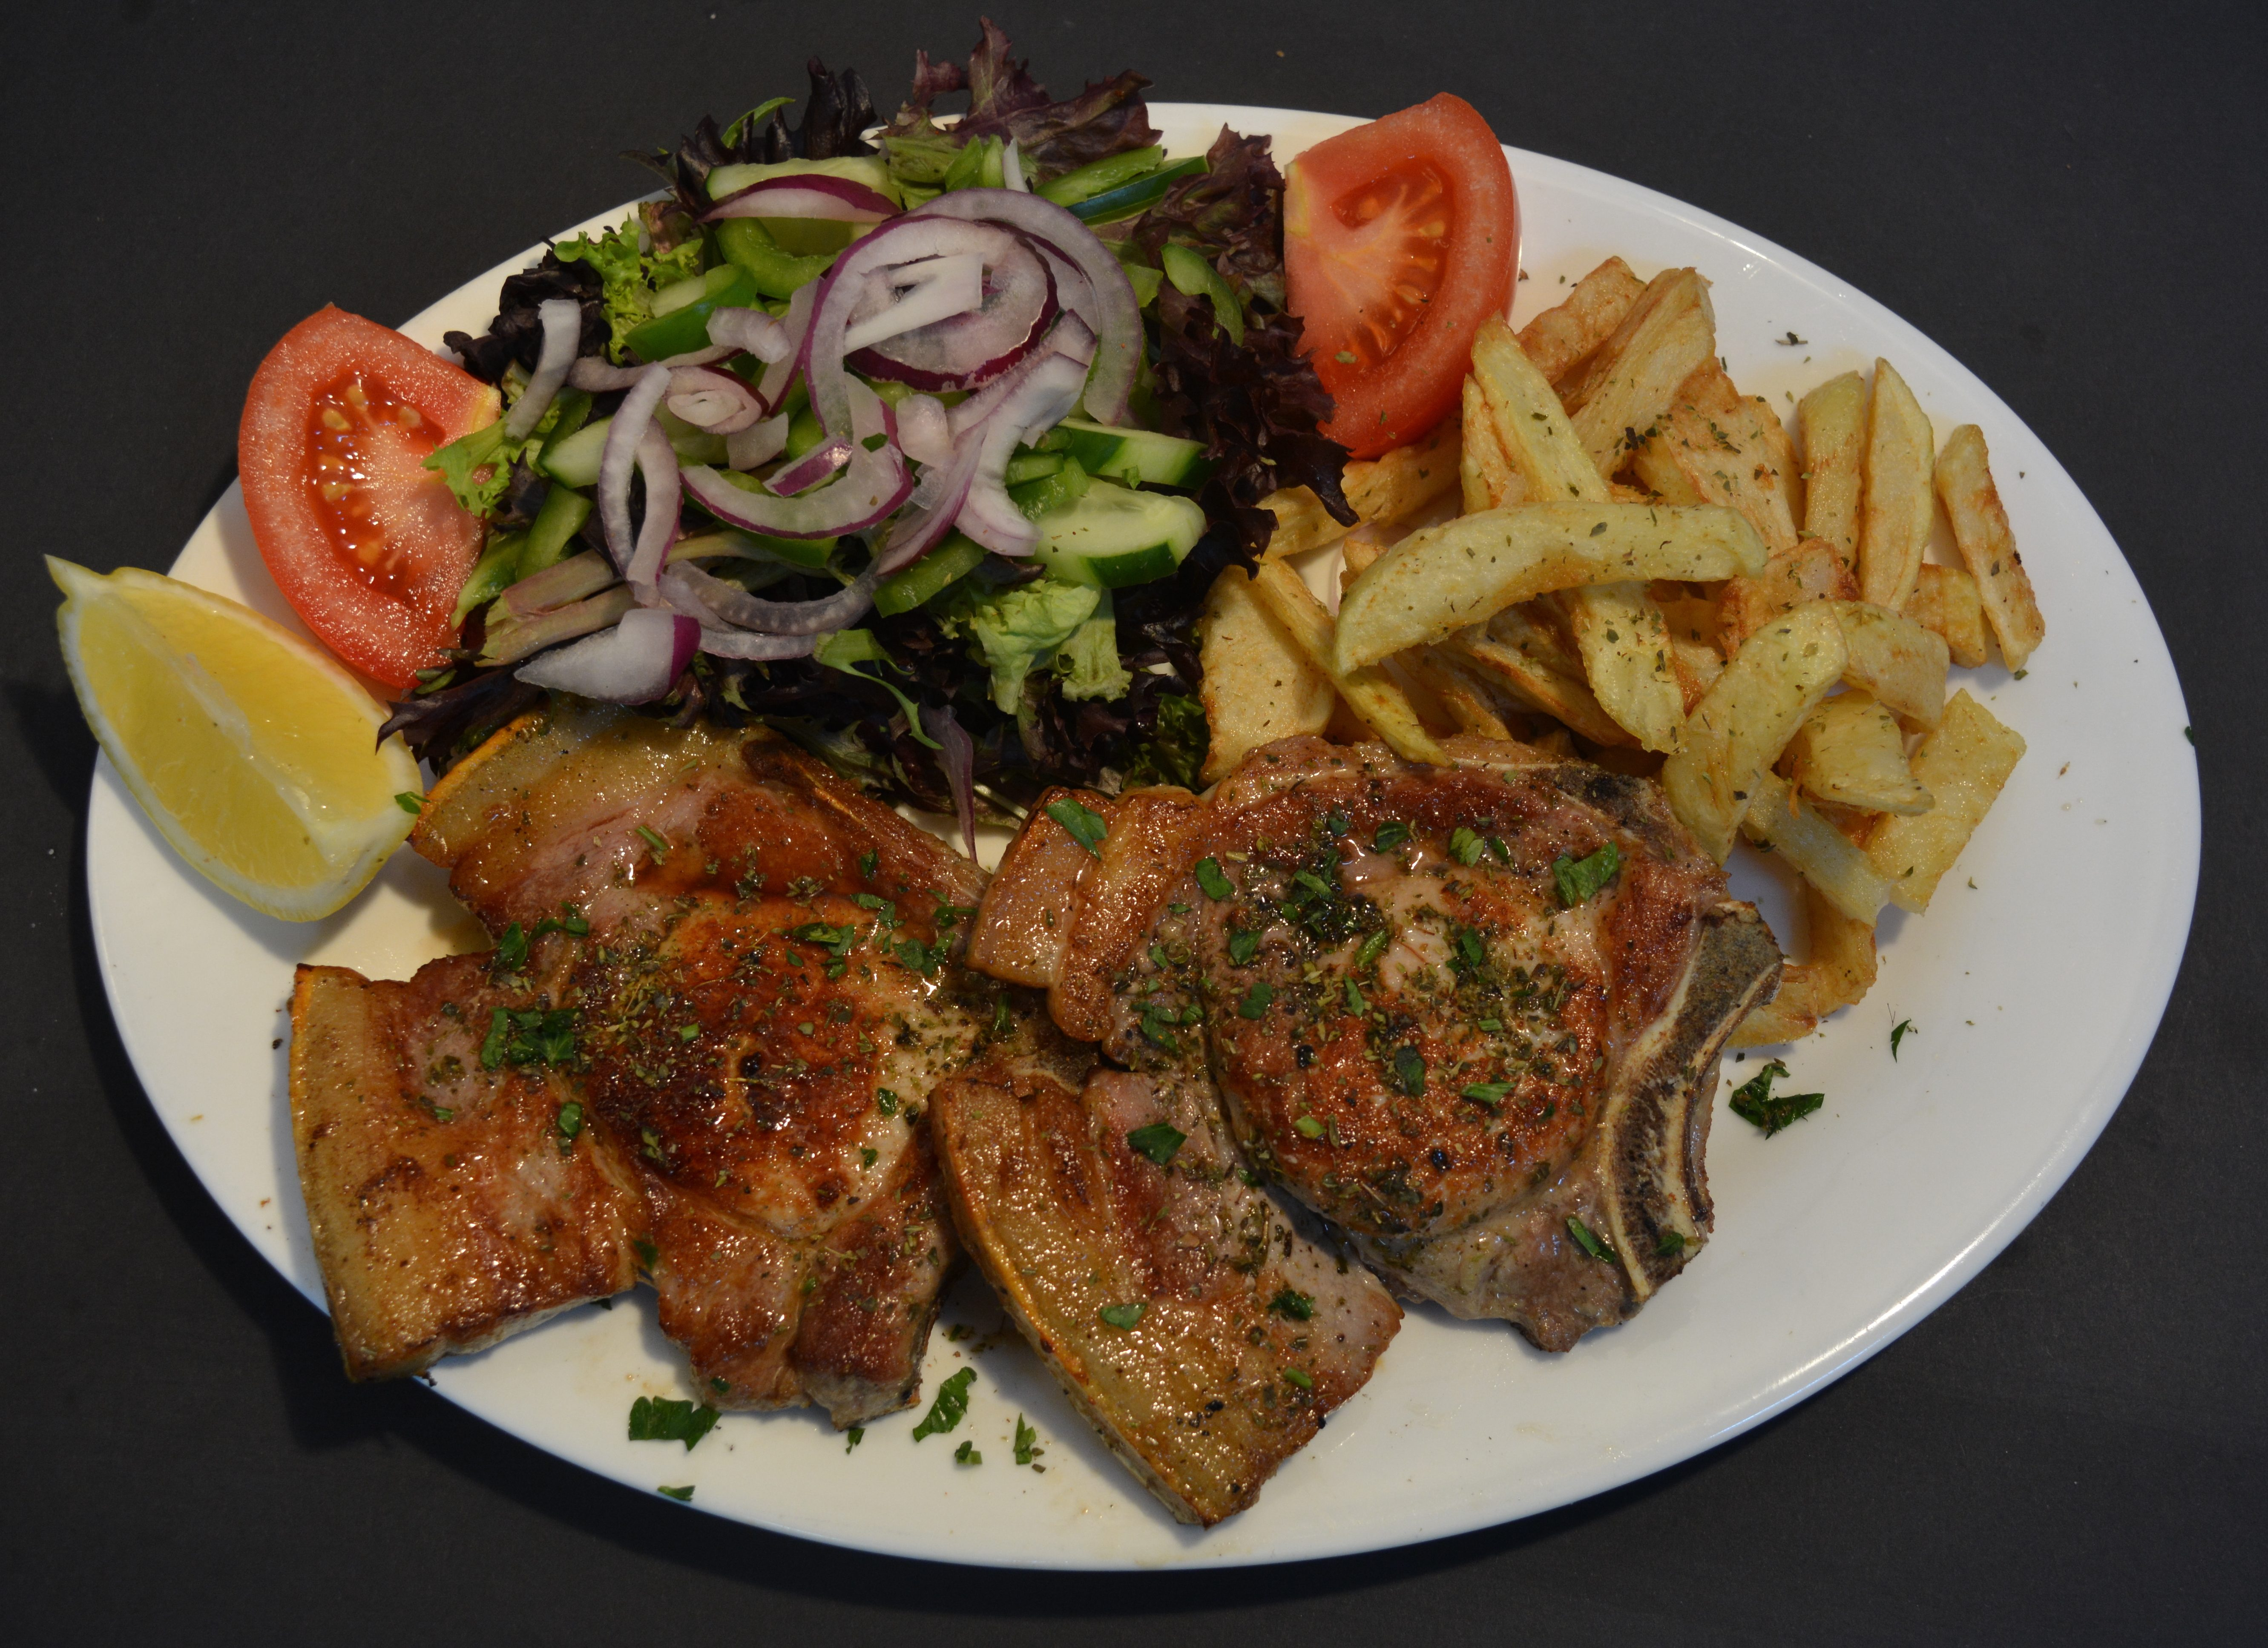 Pork Loin served with homemade chips and salad or steamed veggies.